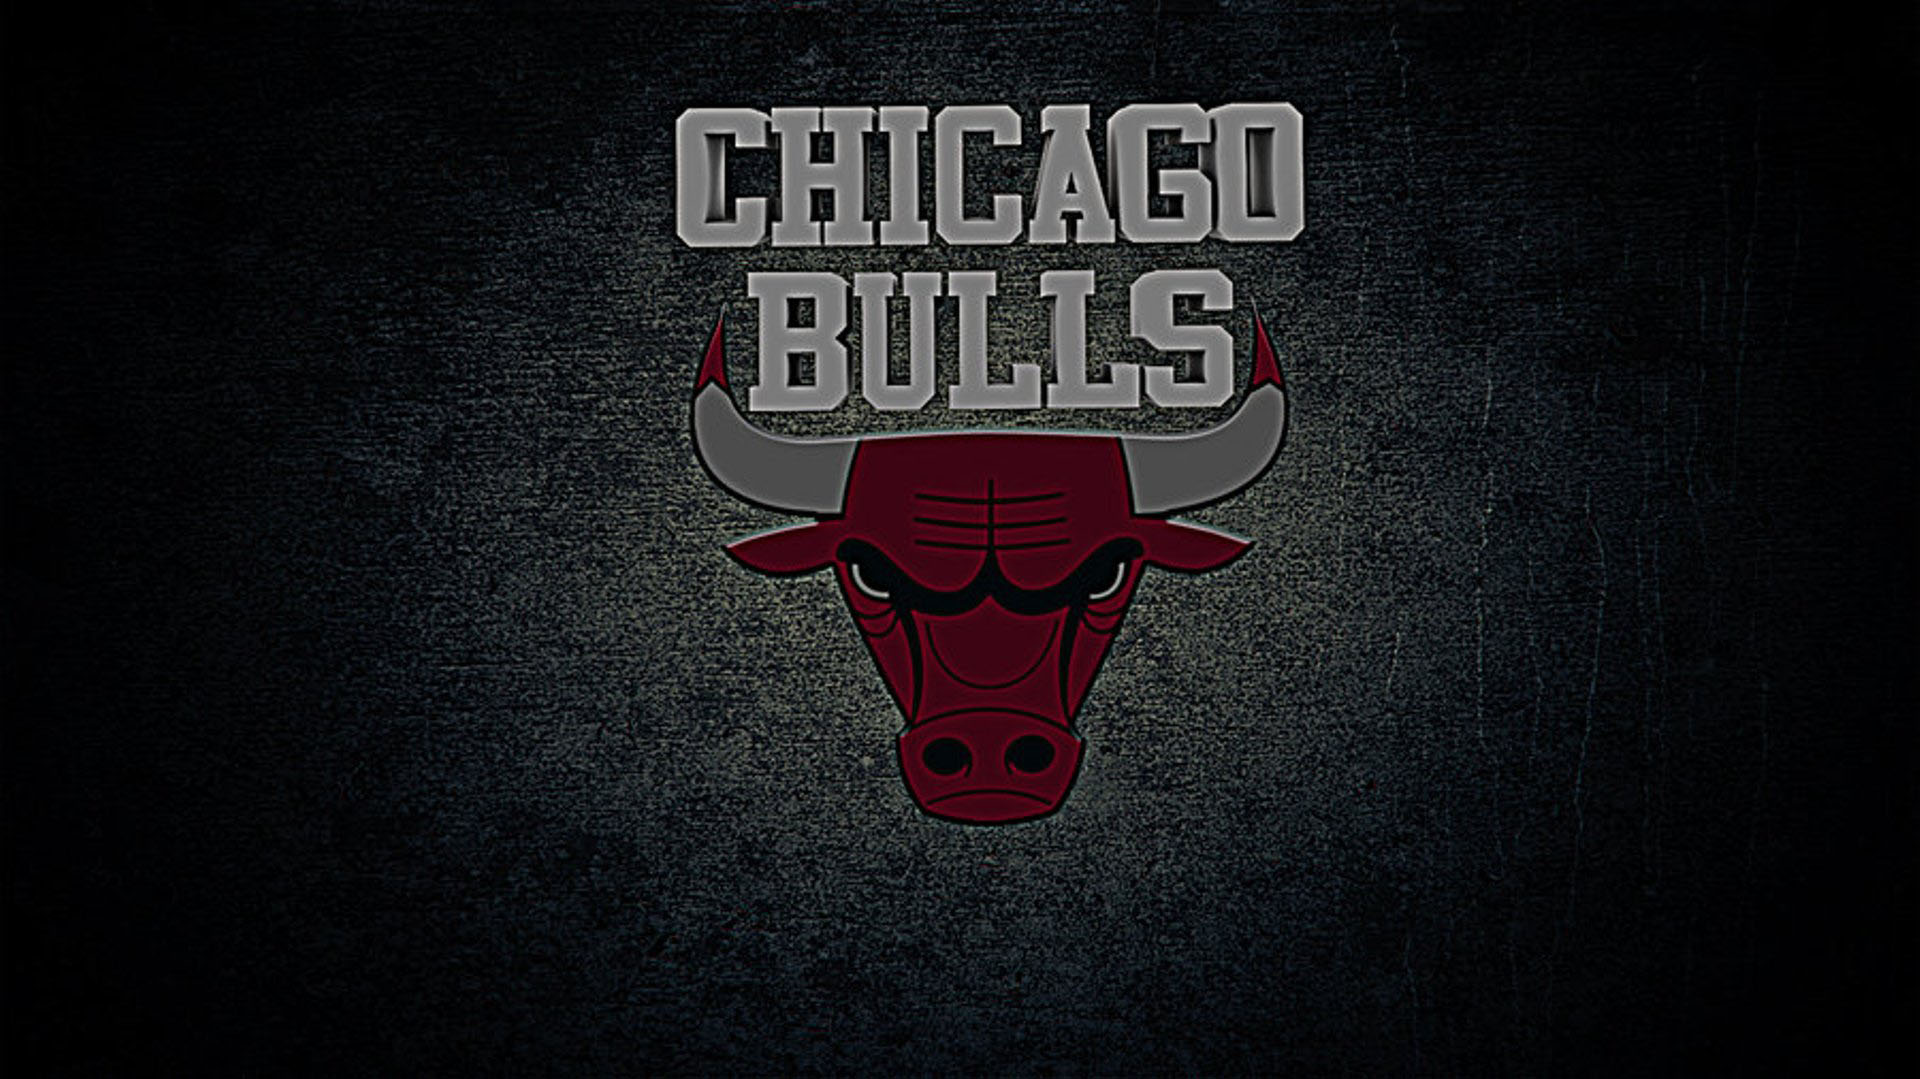 1000+ ideas about Bulls Wallpaper on Pinterest | Chicago bulls